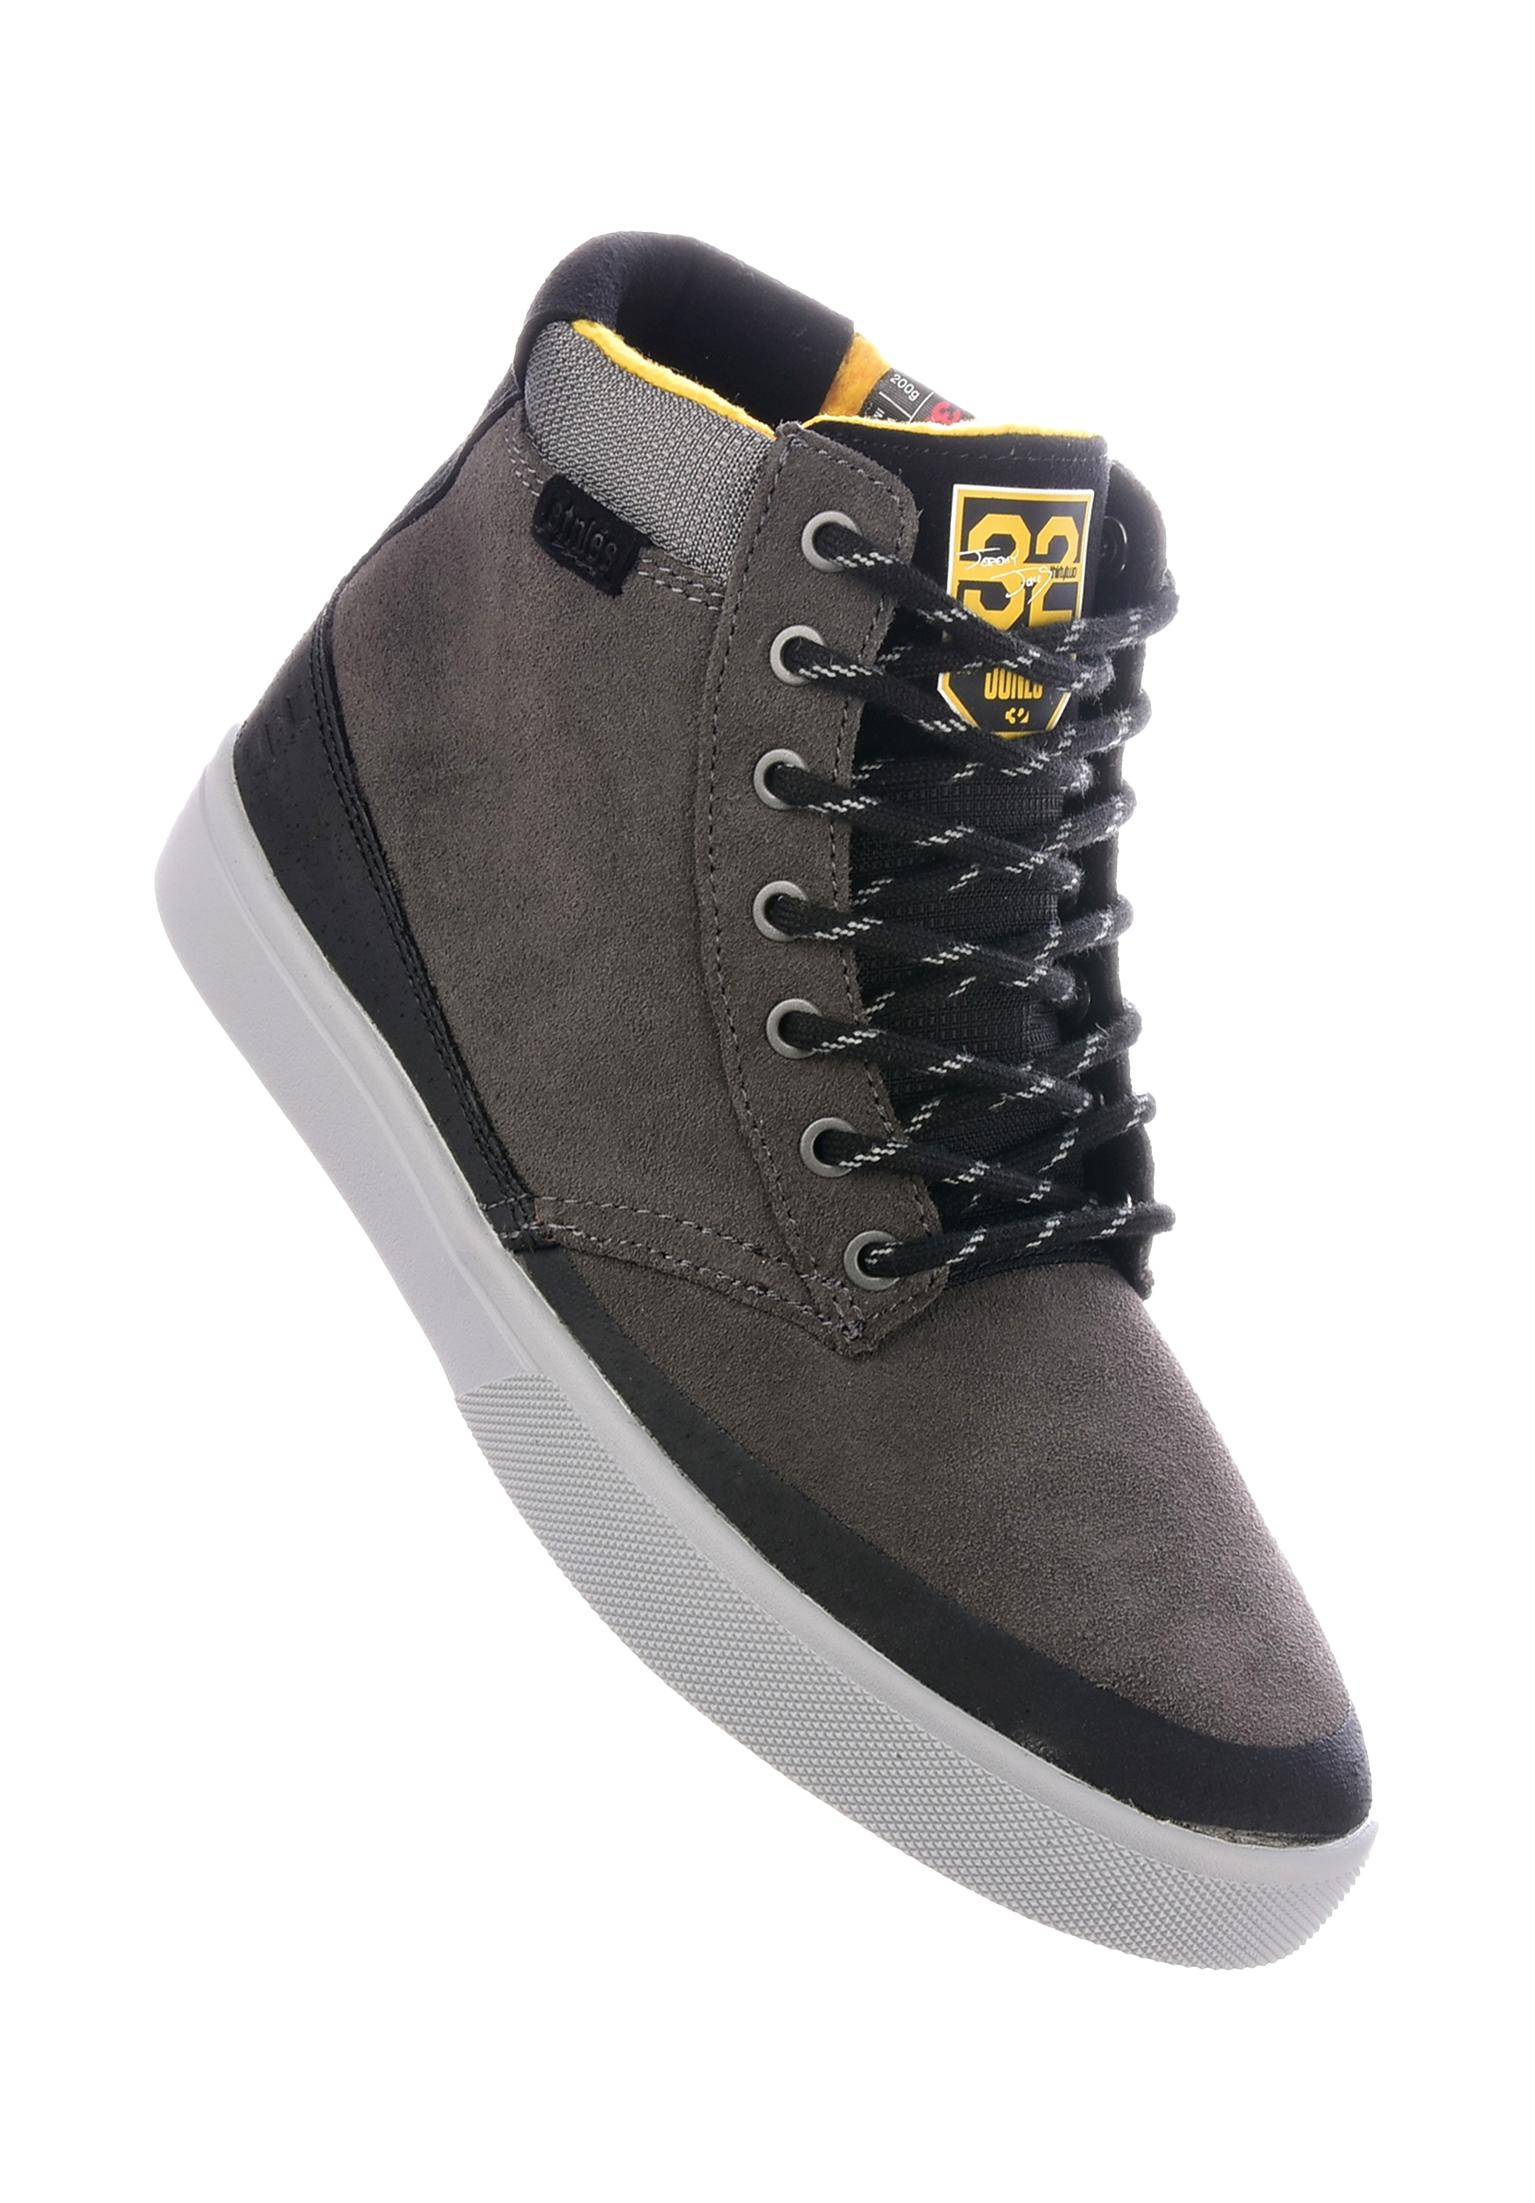 Jameson HTW X 32 etnies All Shoes in grey black yellow for